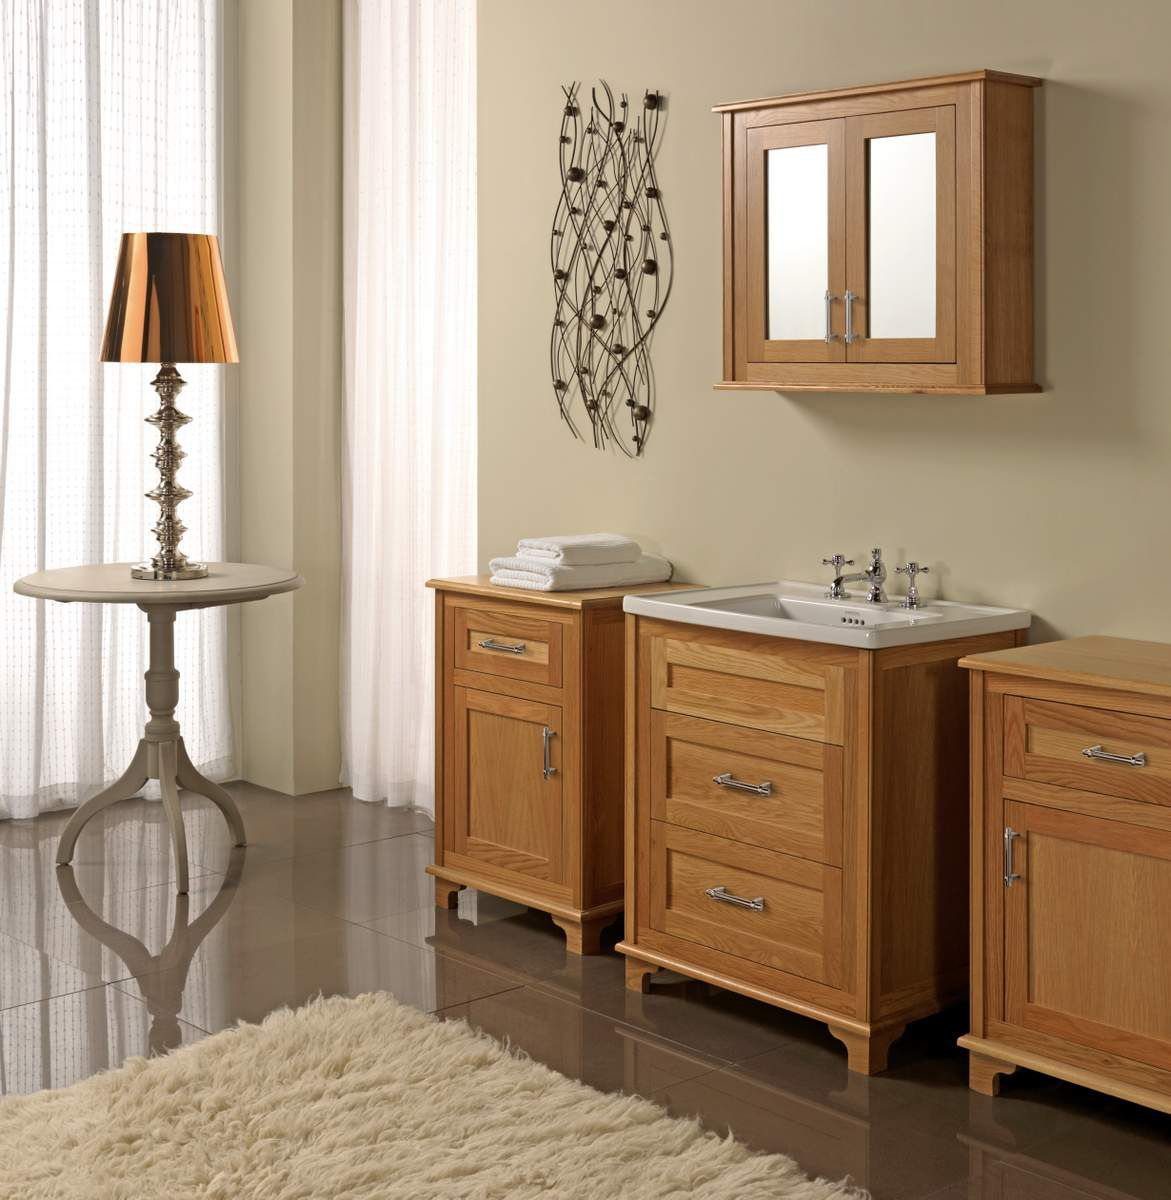 Bathroom cupboards wall mounted freestanding storage units uk bathrooms